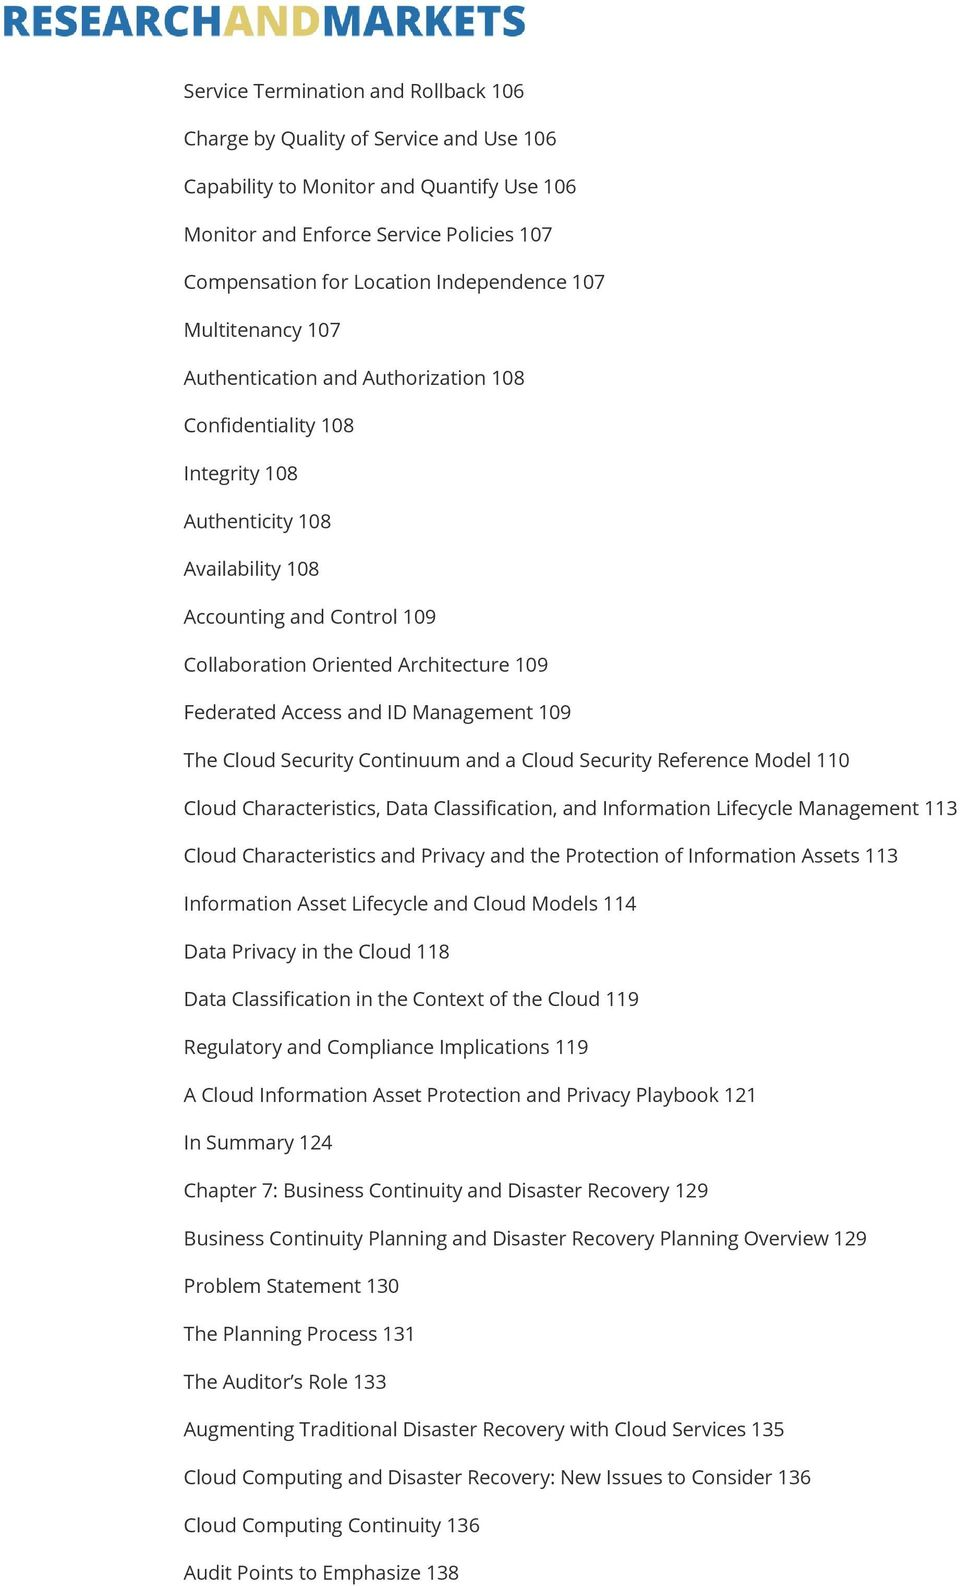 Architecture 109 Federated Access and ID Management 109 The Cloud Security Continuum and a Cloud Security Reference Model 110 Cloud Characteristics, Data Classification, and Information Lifecycle